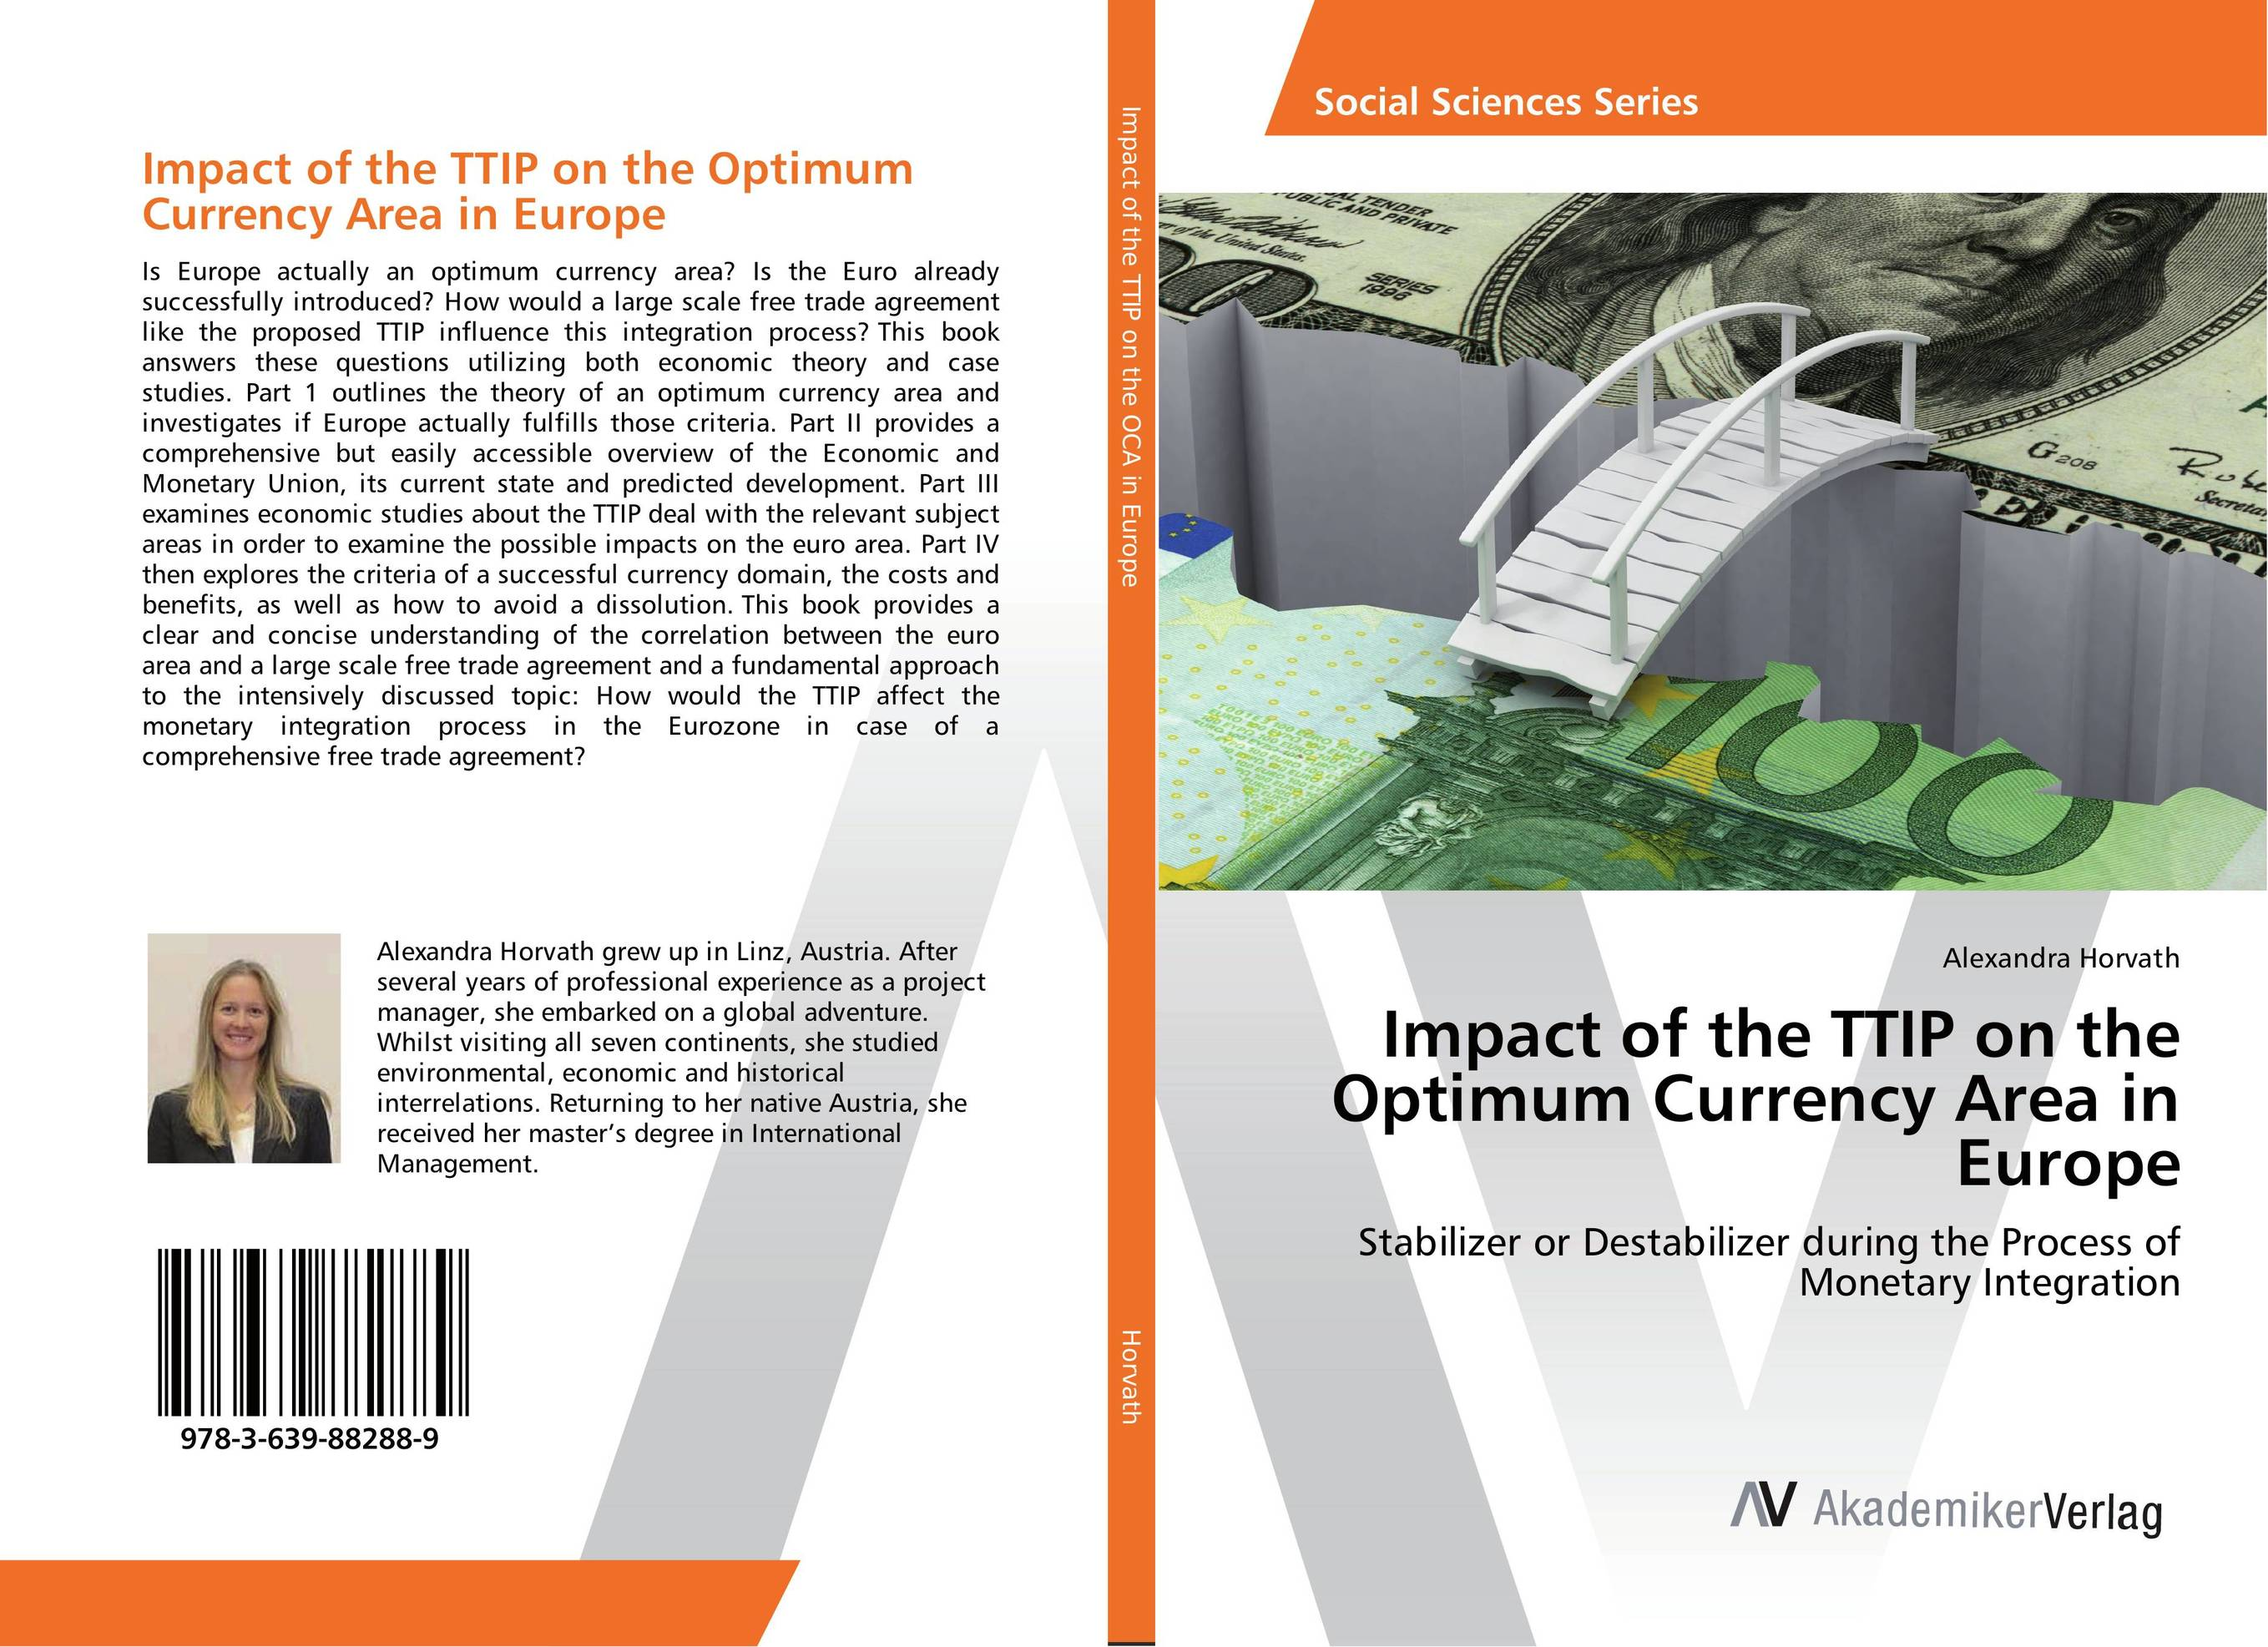 Impact of the TTIP on the Optimum Currency Area in Europe olena rabtsun the rise of the euro as a global currency